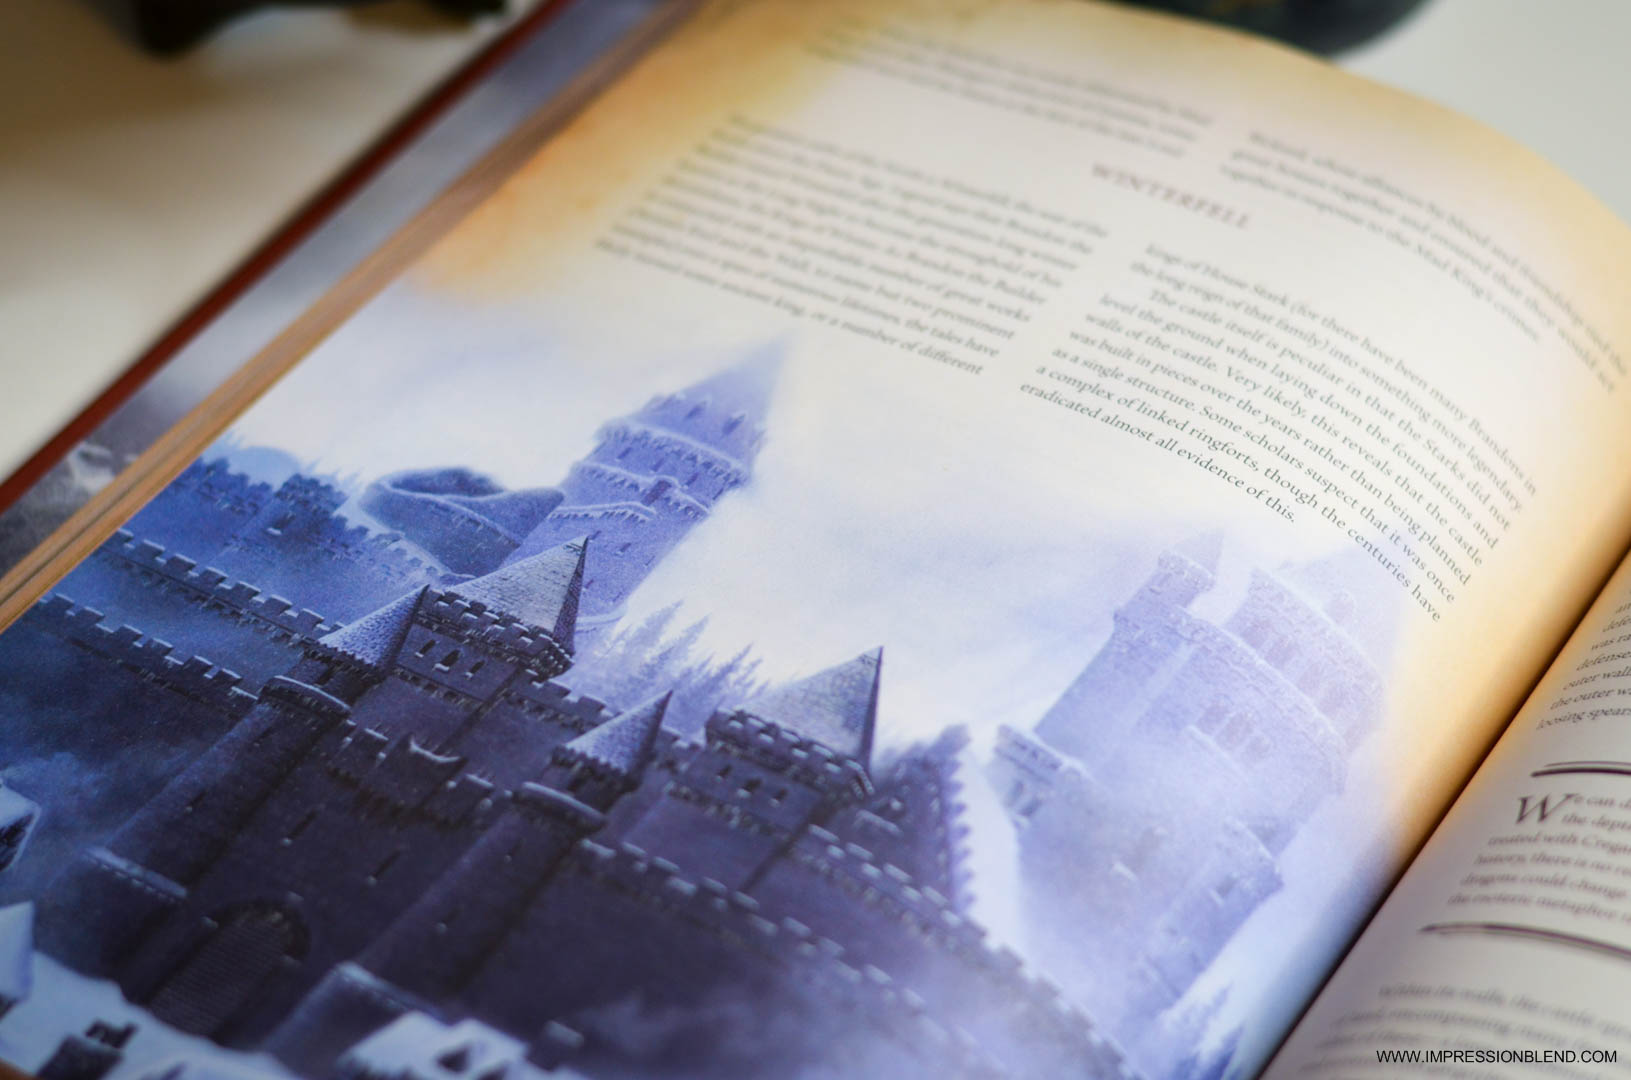 The World of Ice and Fire - Winterfell